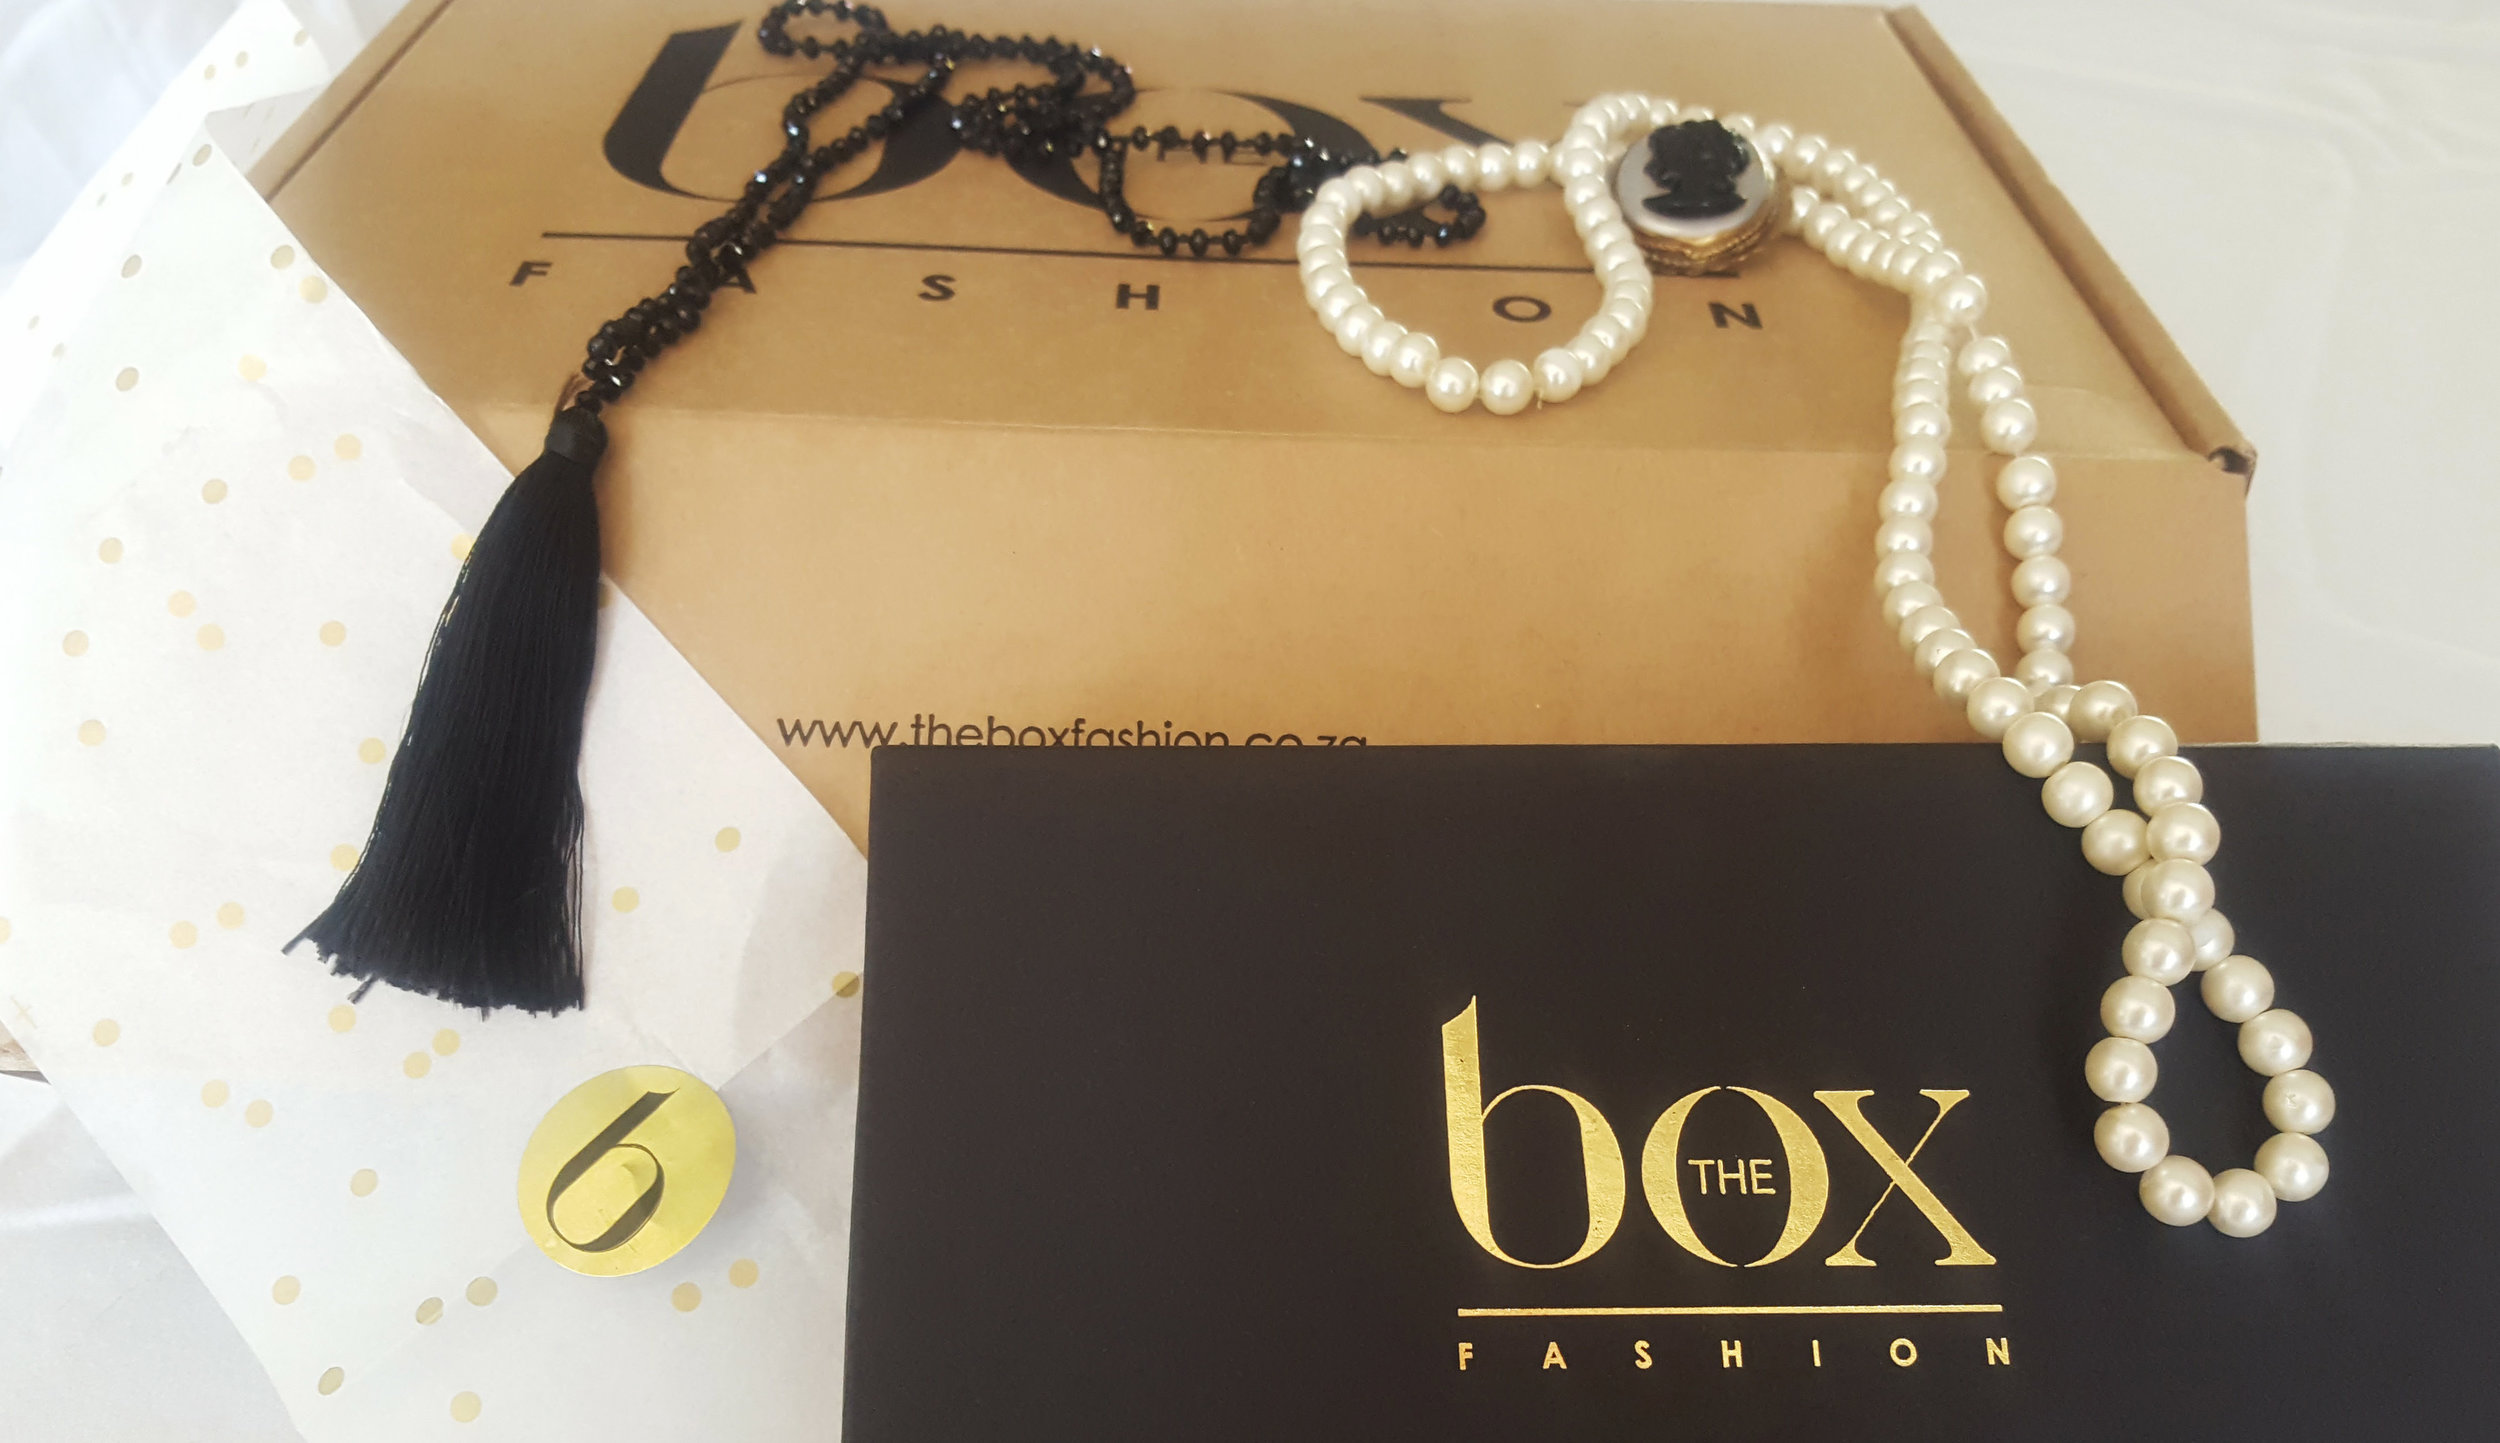 Tassels & Tigers Interiors Lifestyle Blog unboxes a box from The Box Fashion!